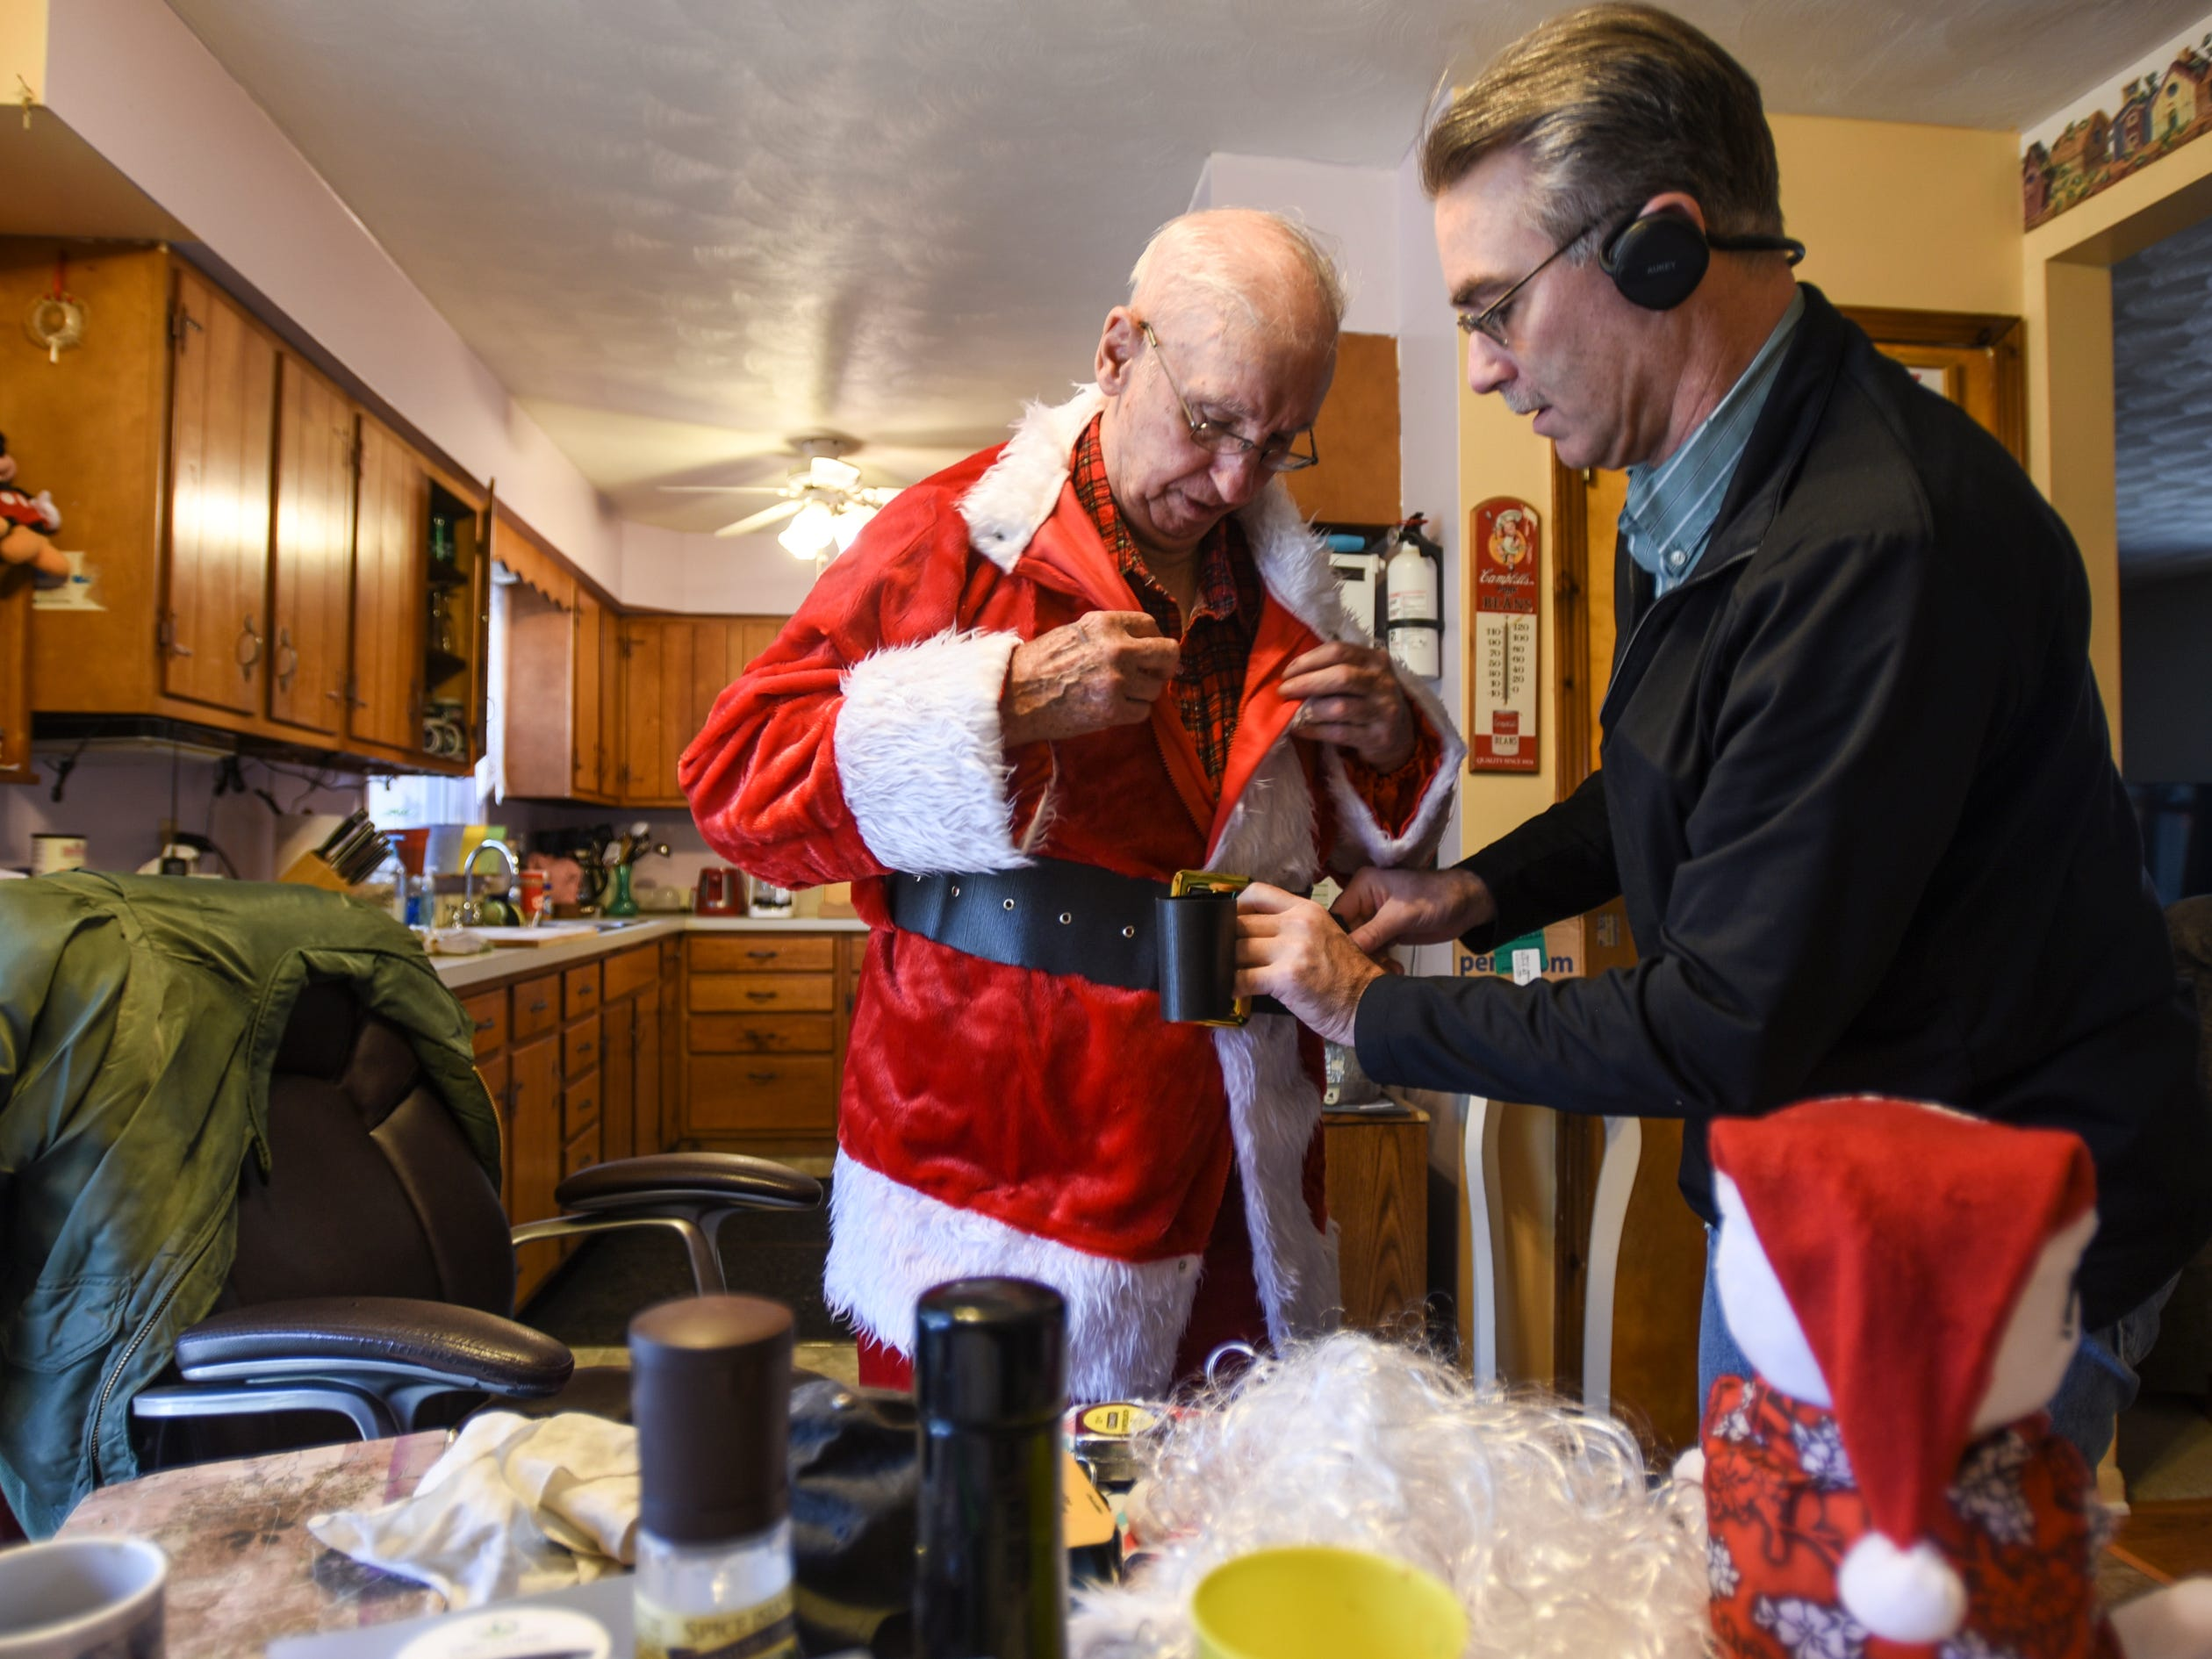 "Dana West, right, helps his 90-year-old father Don into his Santa suit Saturday, Dec. 8, 2018, at their home in Eaton Rapids.  Don is preparing to go to a Charlotte adult foster care home to visit Jackie, his wife of 64 years.  She had a stroke in June of 2017.  Jackie is fed through a tube, and can only move her right hand.  ""She'll never come back home,"" he says, ""unfortunately she's not getting any better, so I'm gonna take the party to her.""  Don has visited her every day since the stroke."